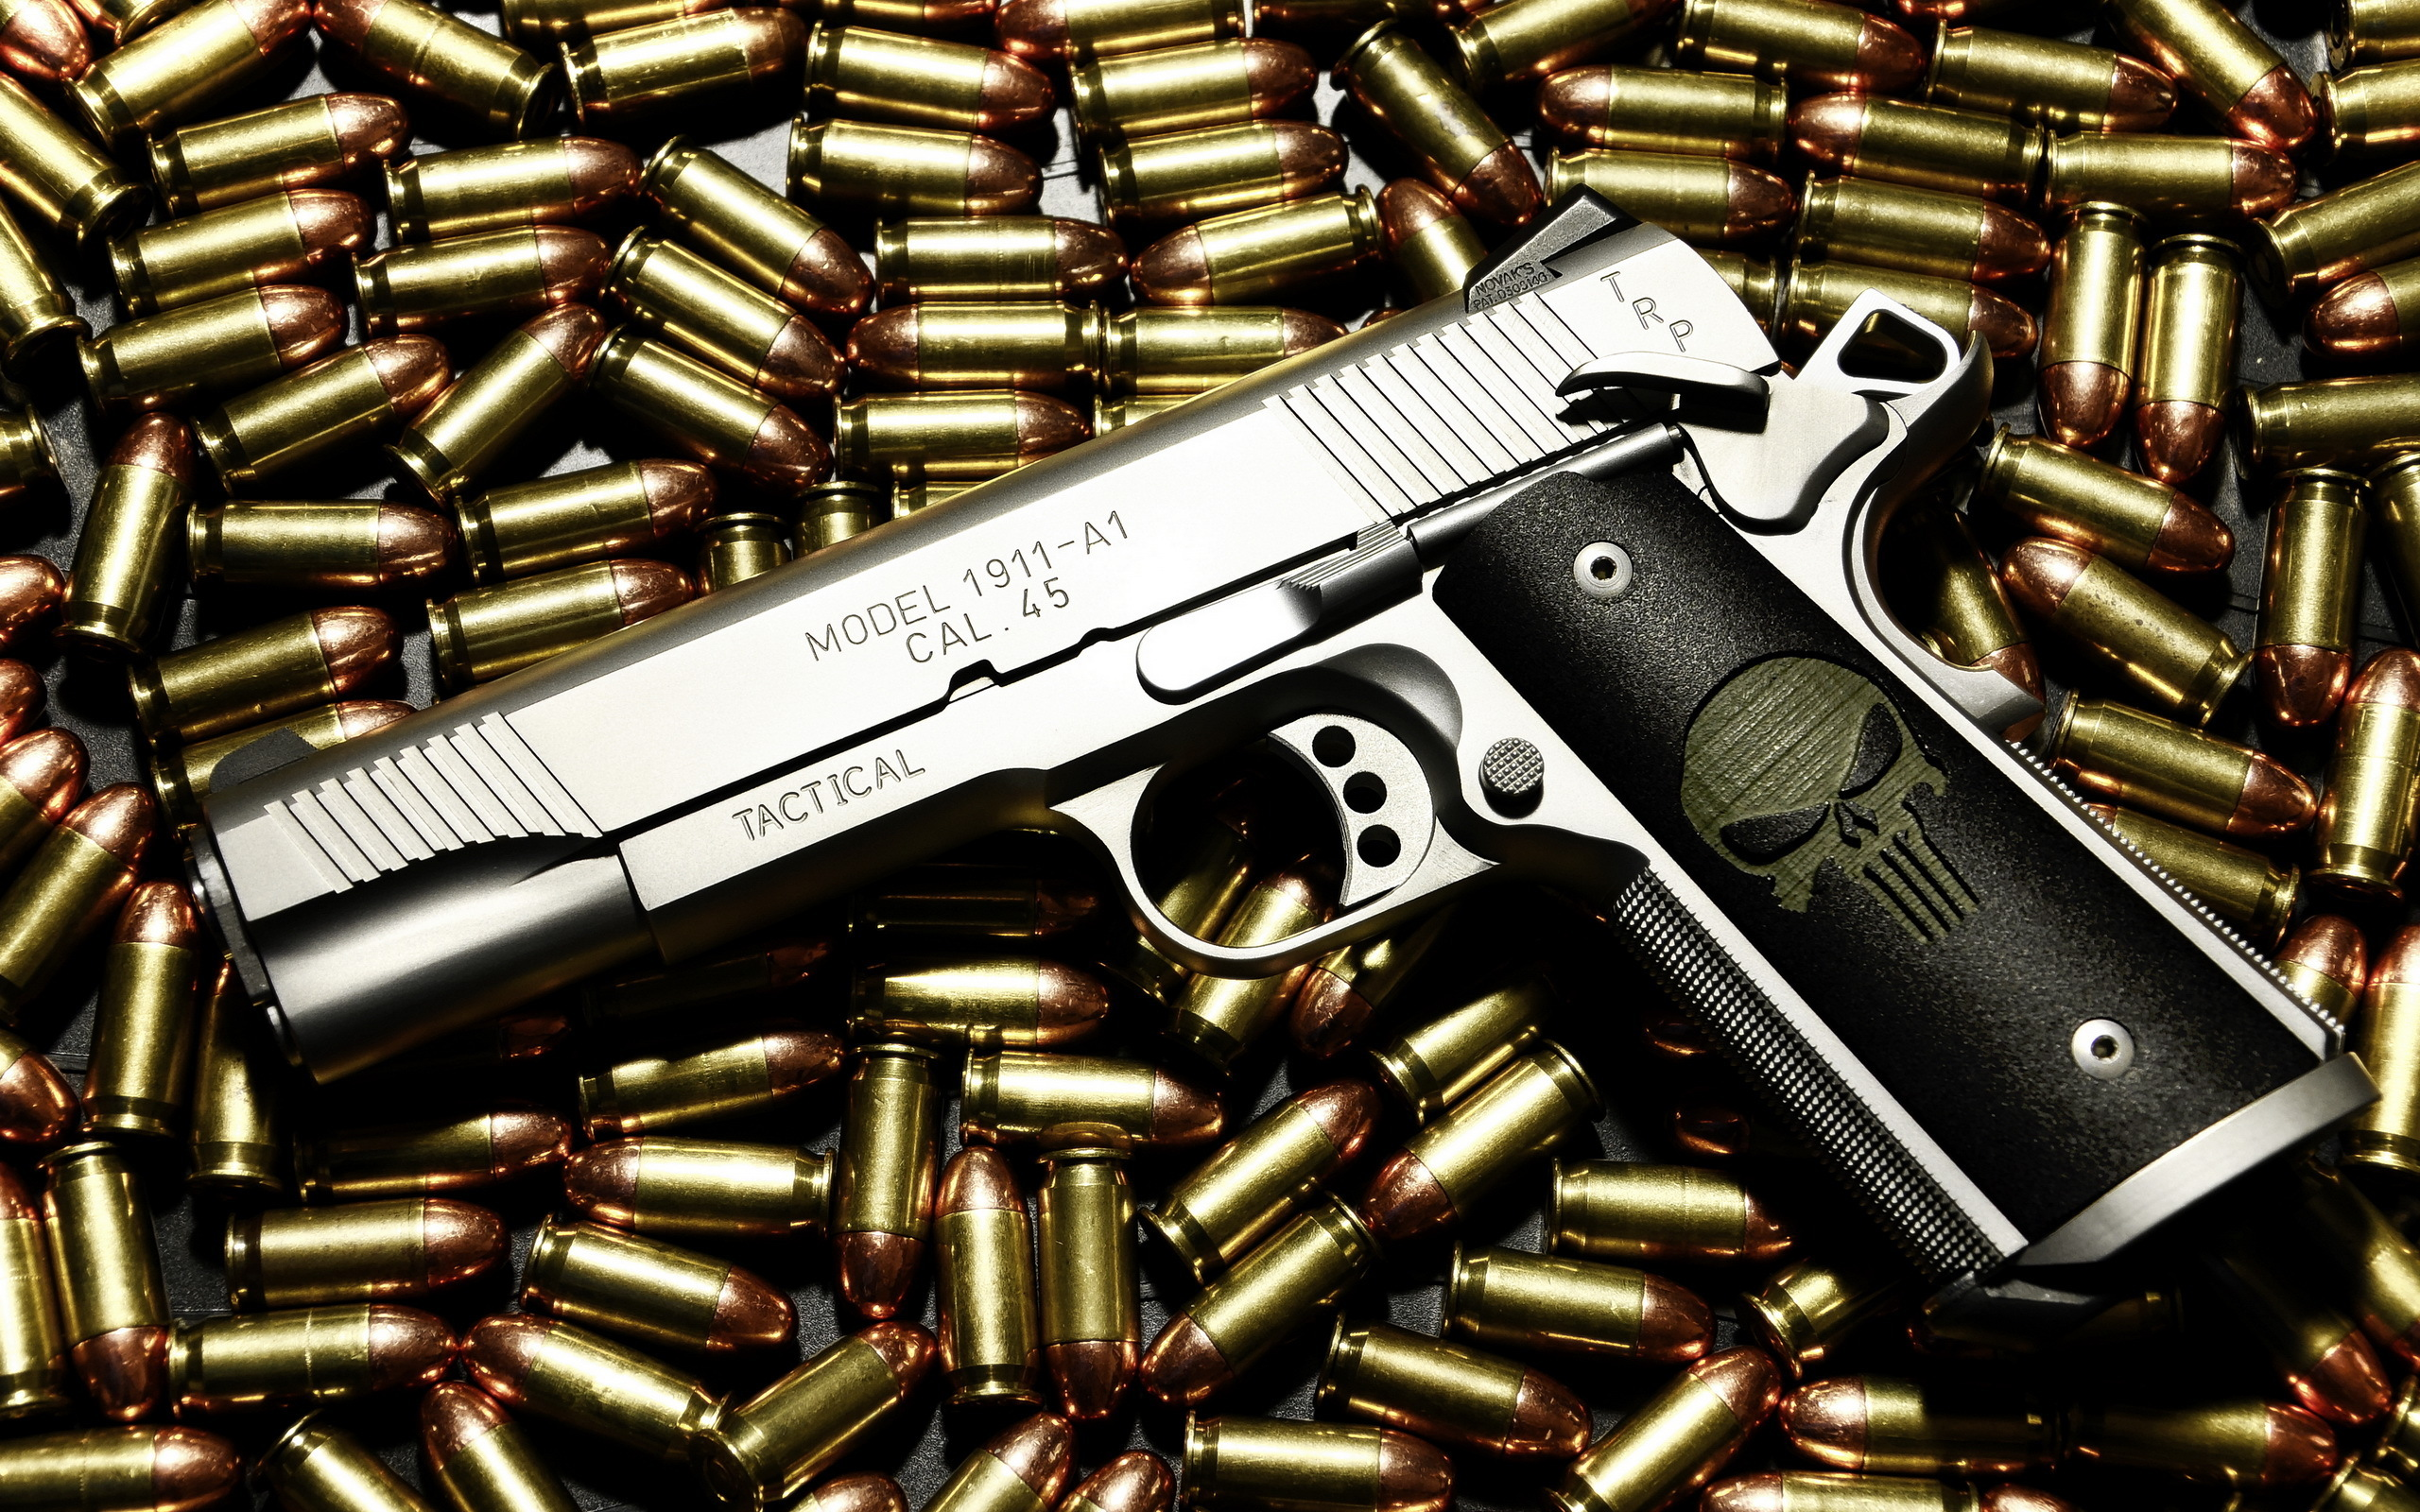 15 Kimber Pistol HD Wallpapers Background Images 2560x1600